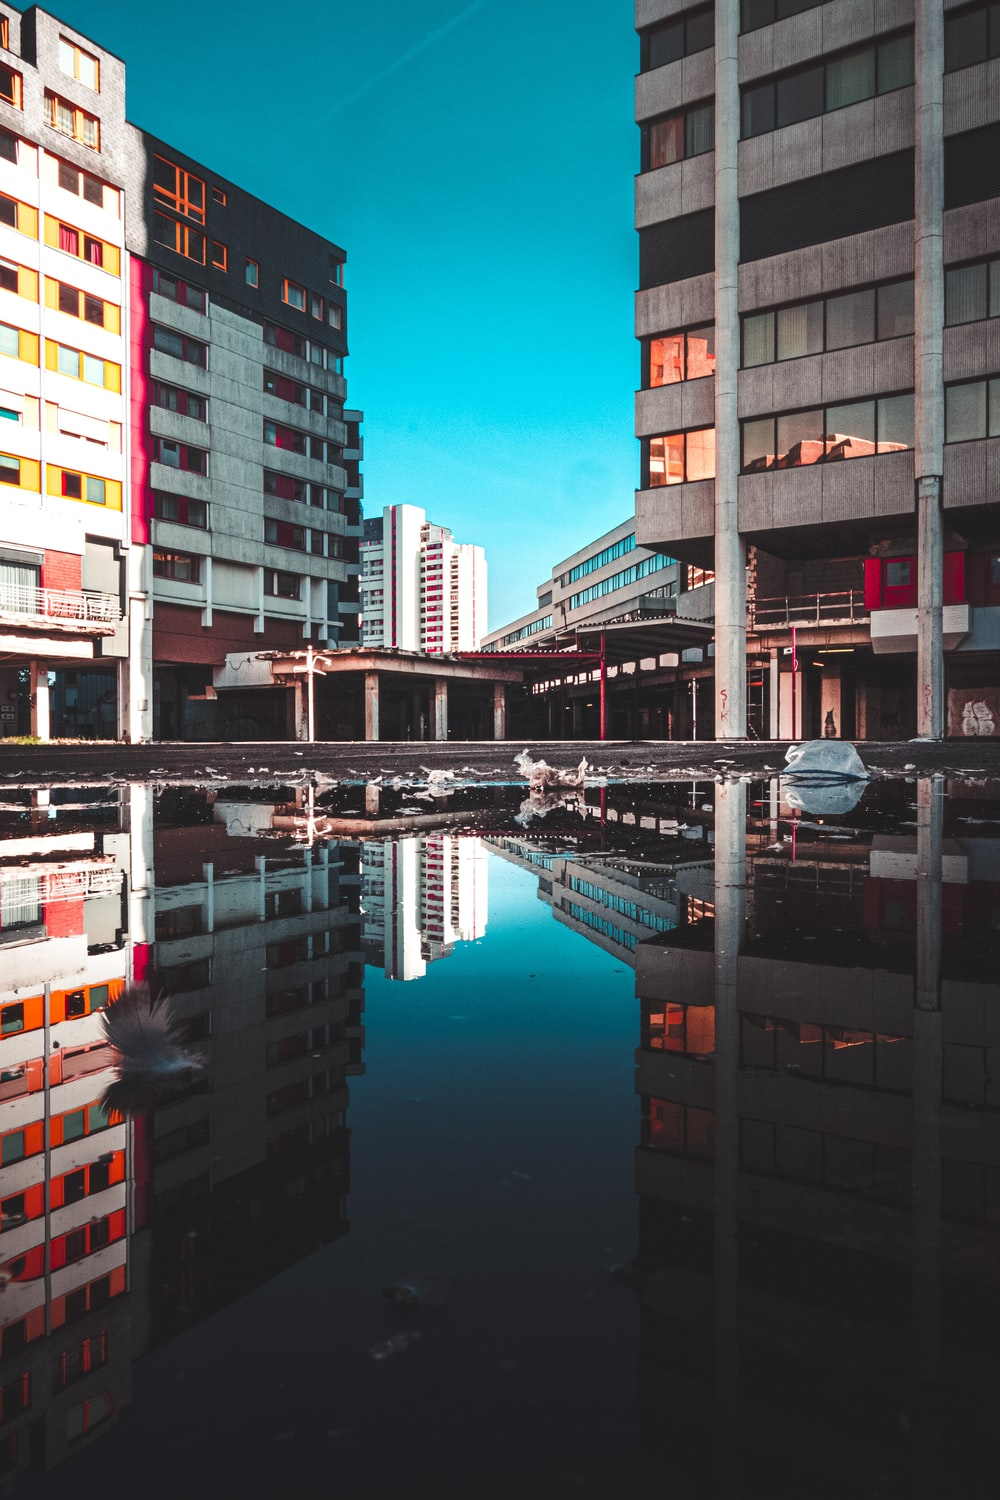 reflection of buildings on body of water during daytime